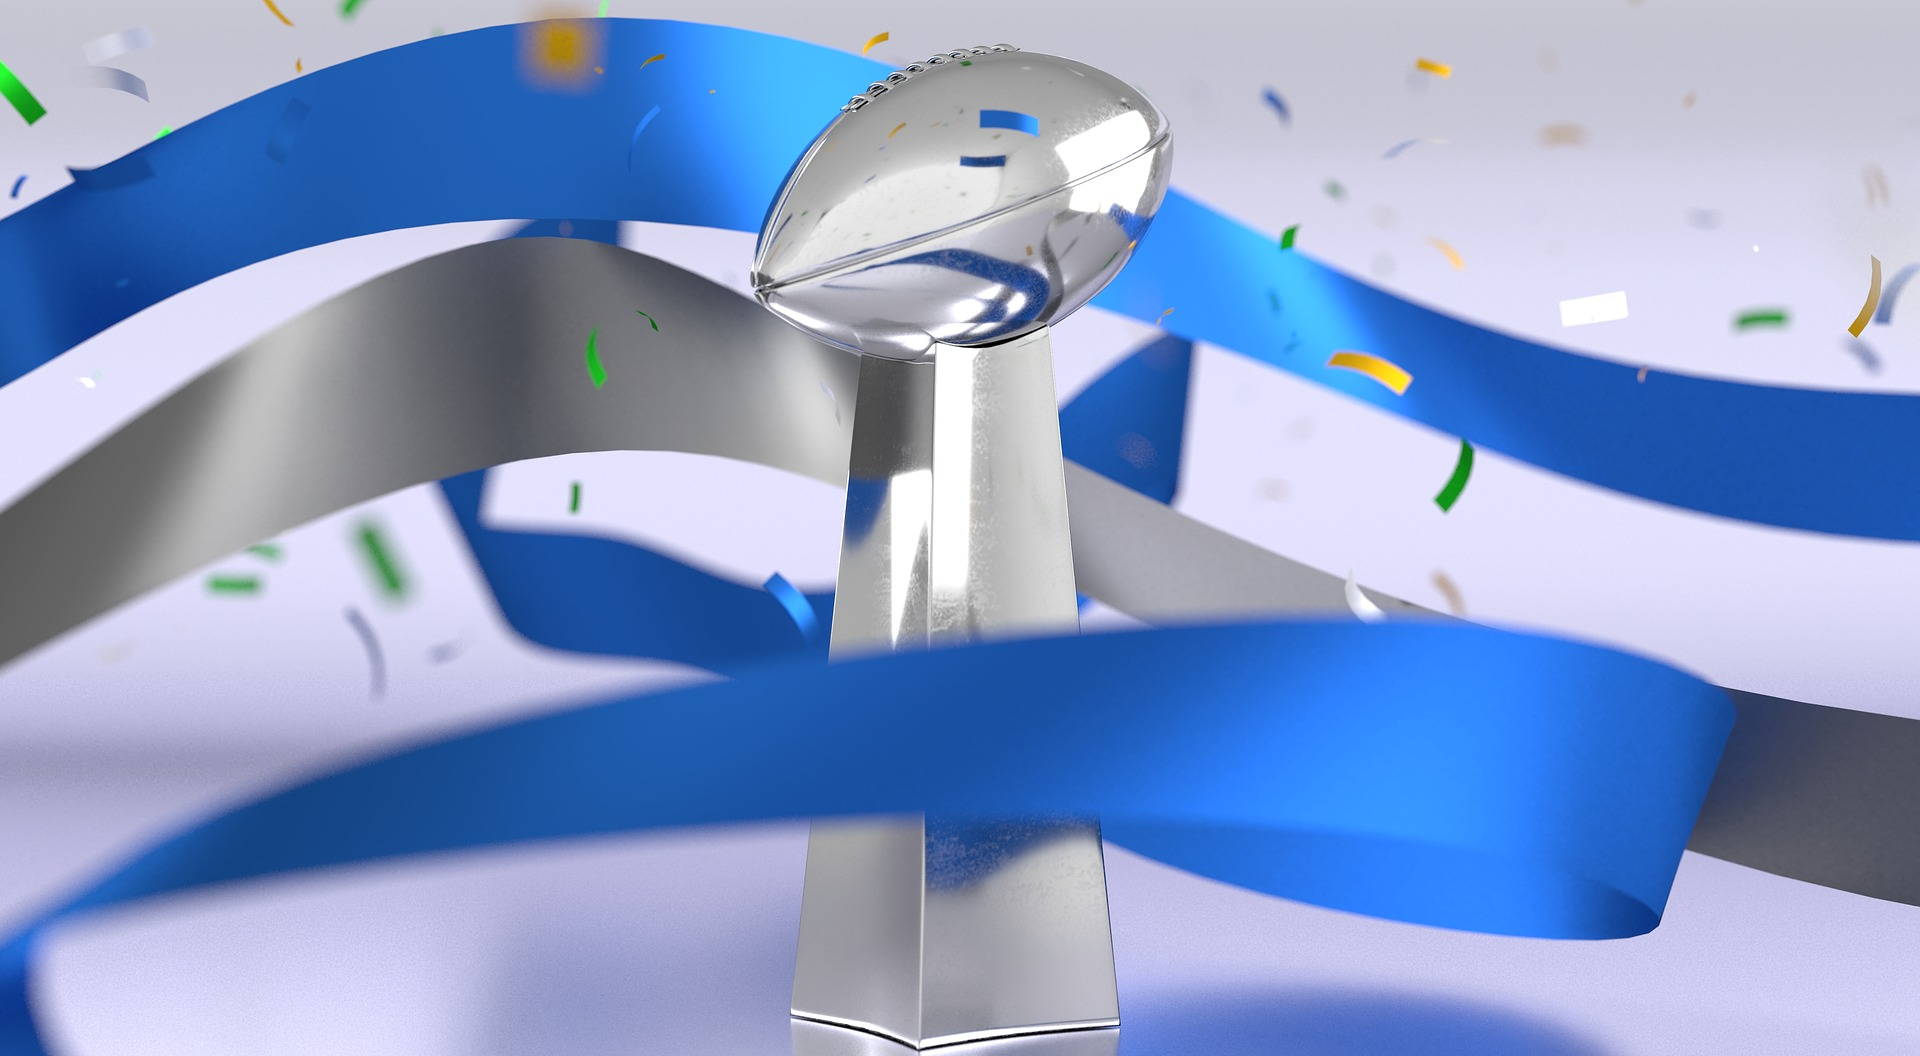 10 Fun Facts About The Super Bowl